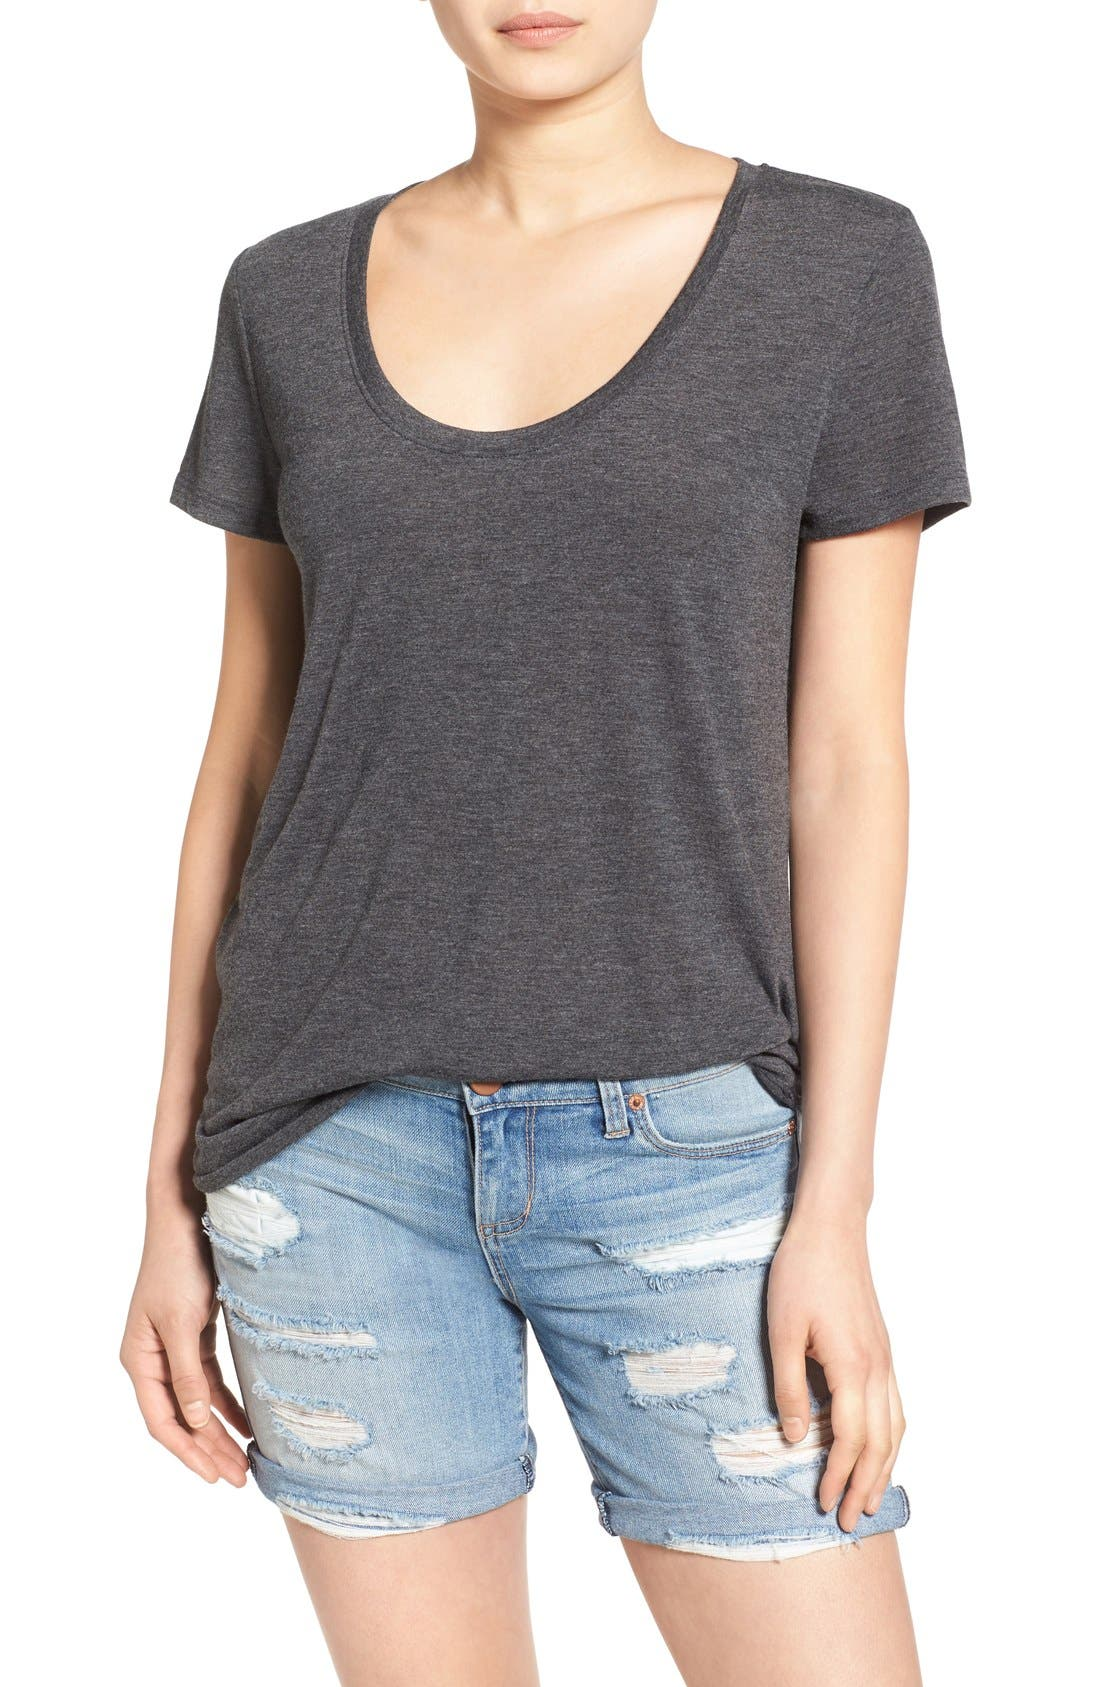 Alternate Image 1 Selected - BP. Scoop Neck Boyfriend Tee (2 for $28)